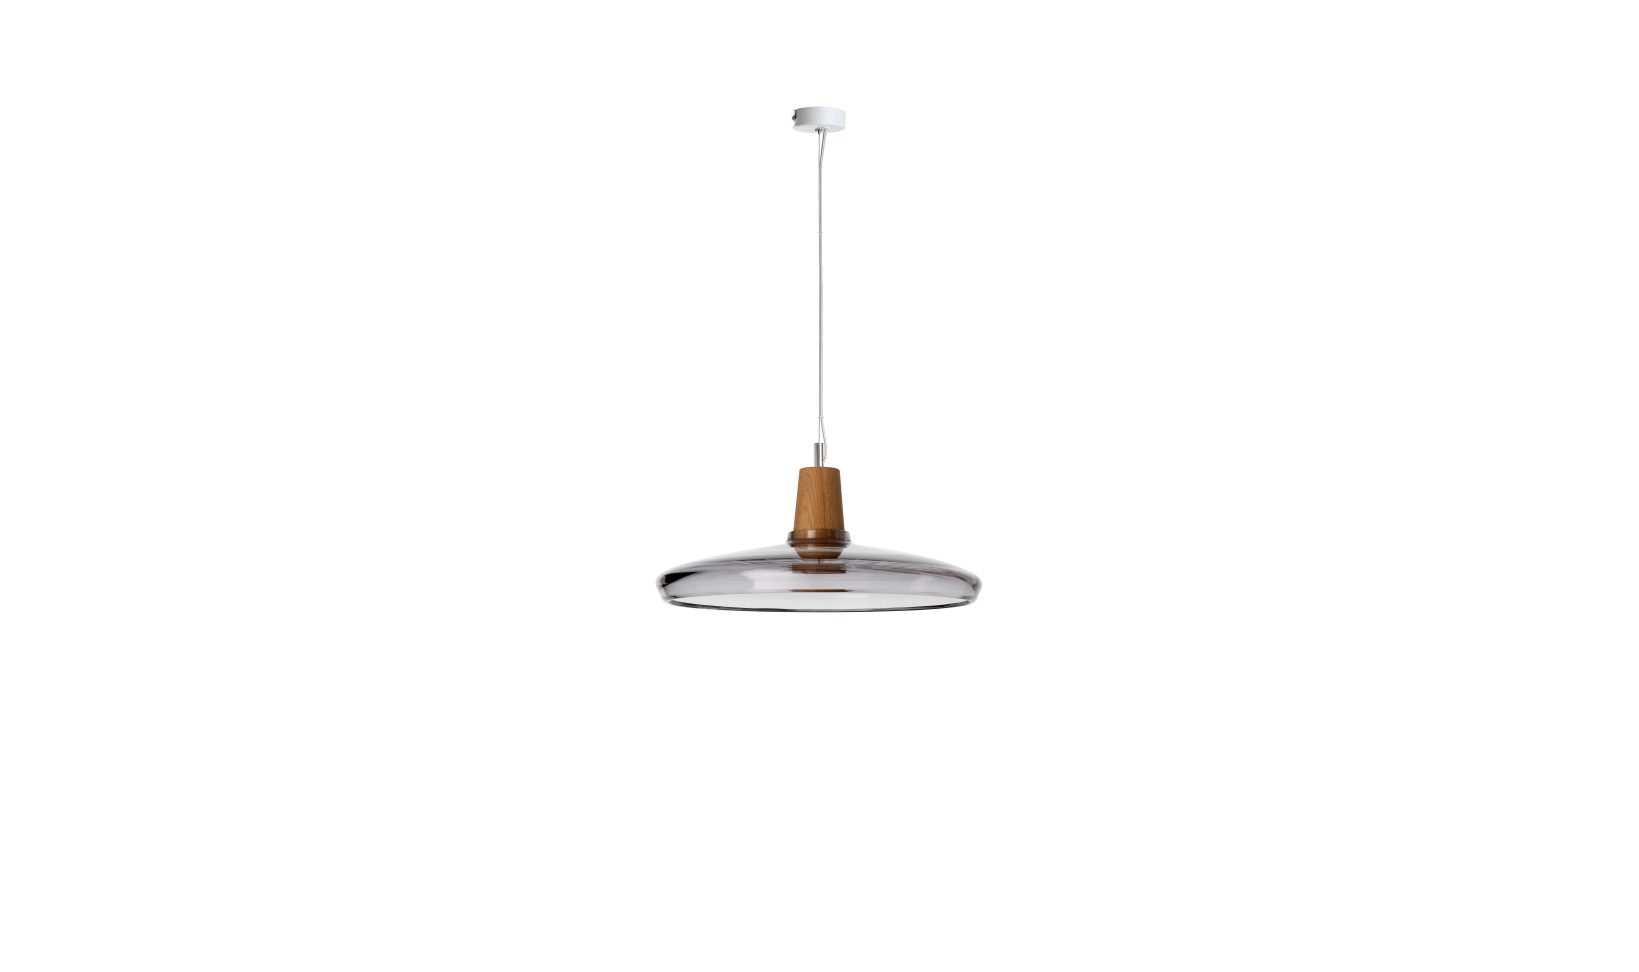 dreizehngrad pendant lamp model Industrial 36/08P anthracite glass lamp design lamp